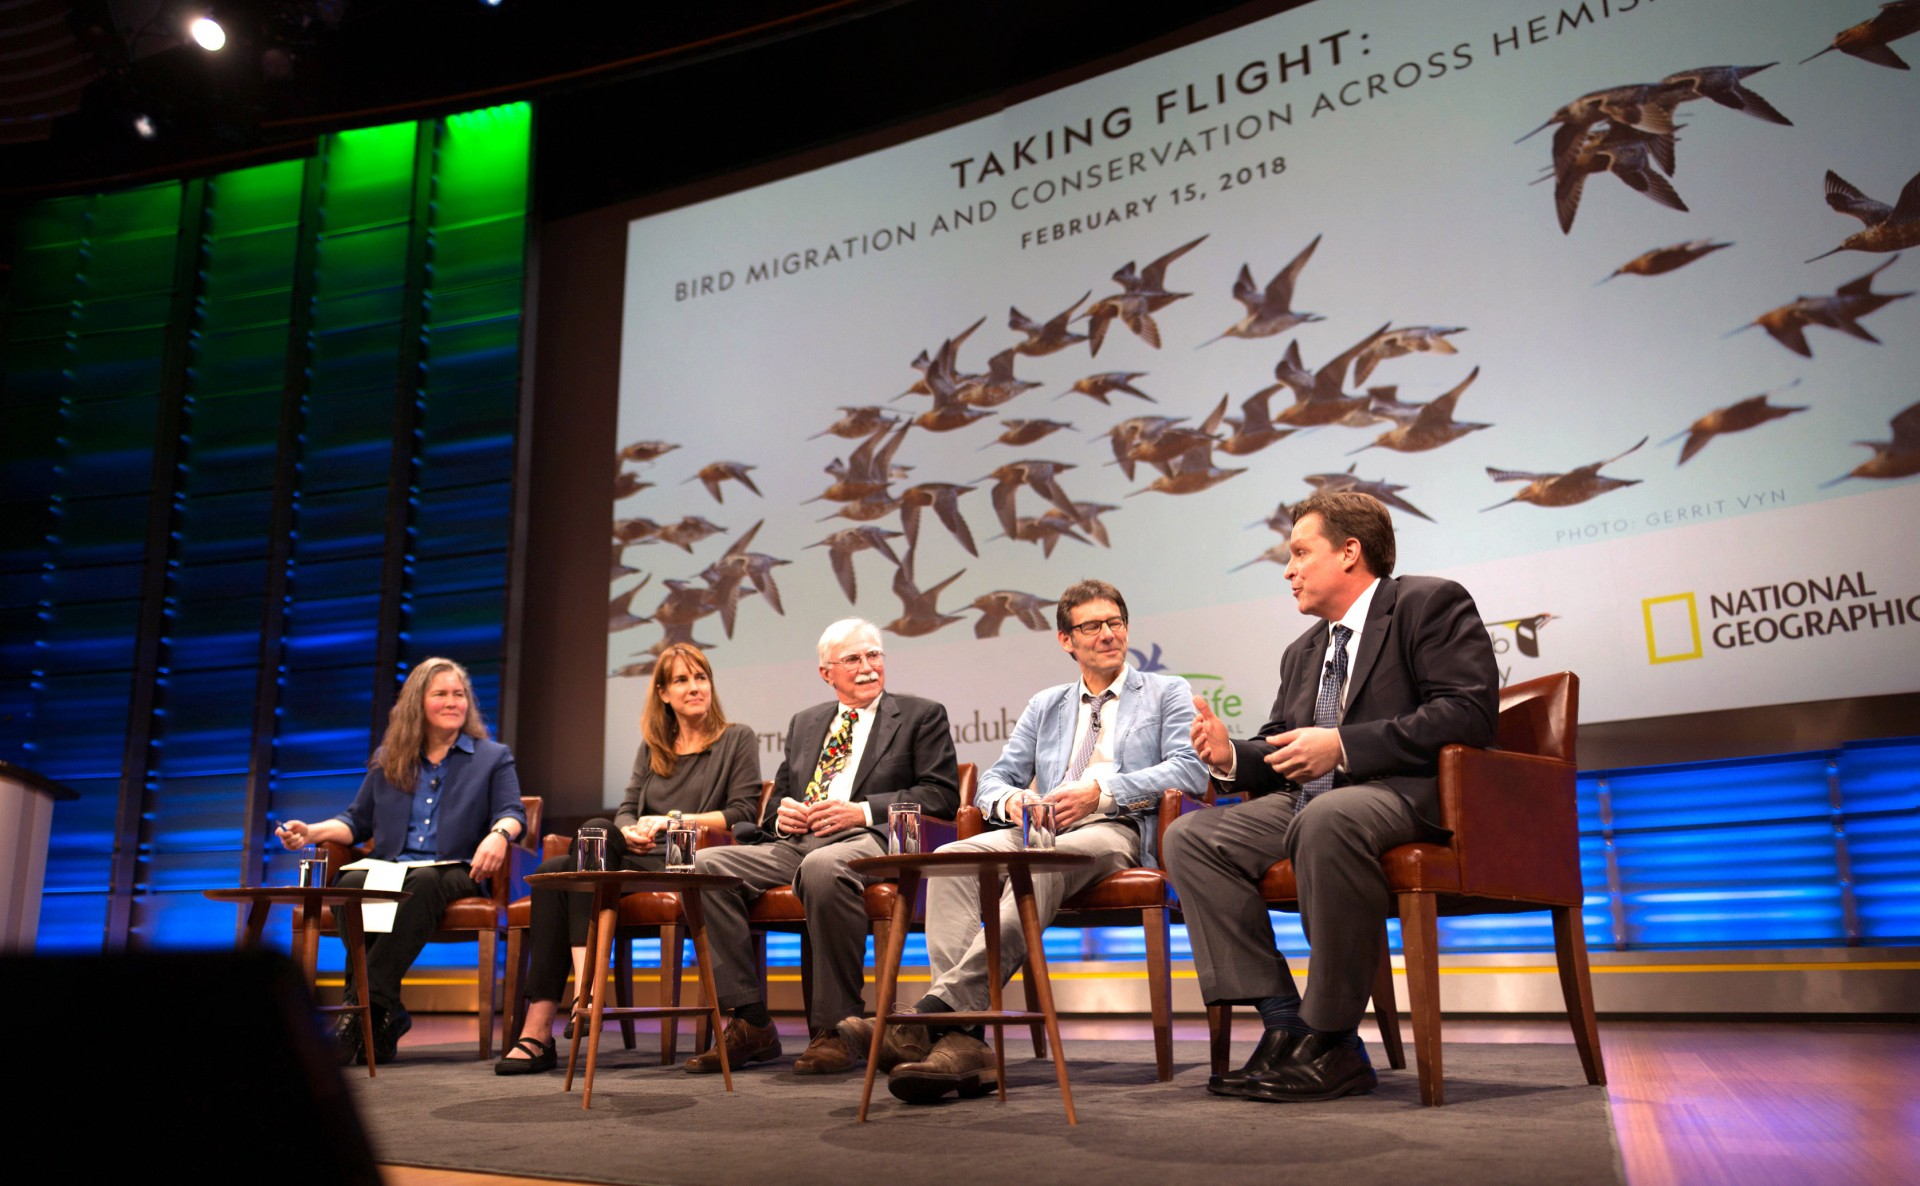 Expert Birders Discuss Conservation Threats and Opportunities at National Geographic Society